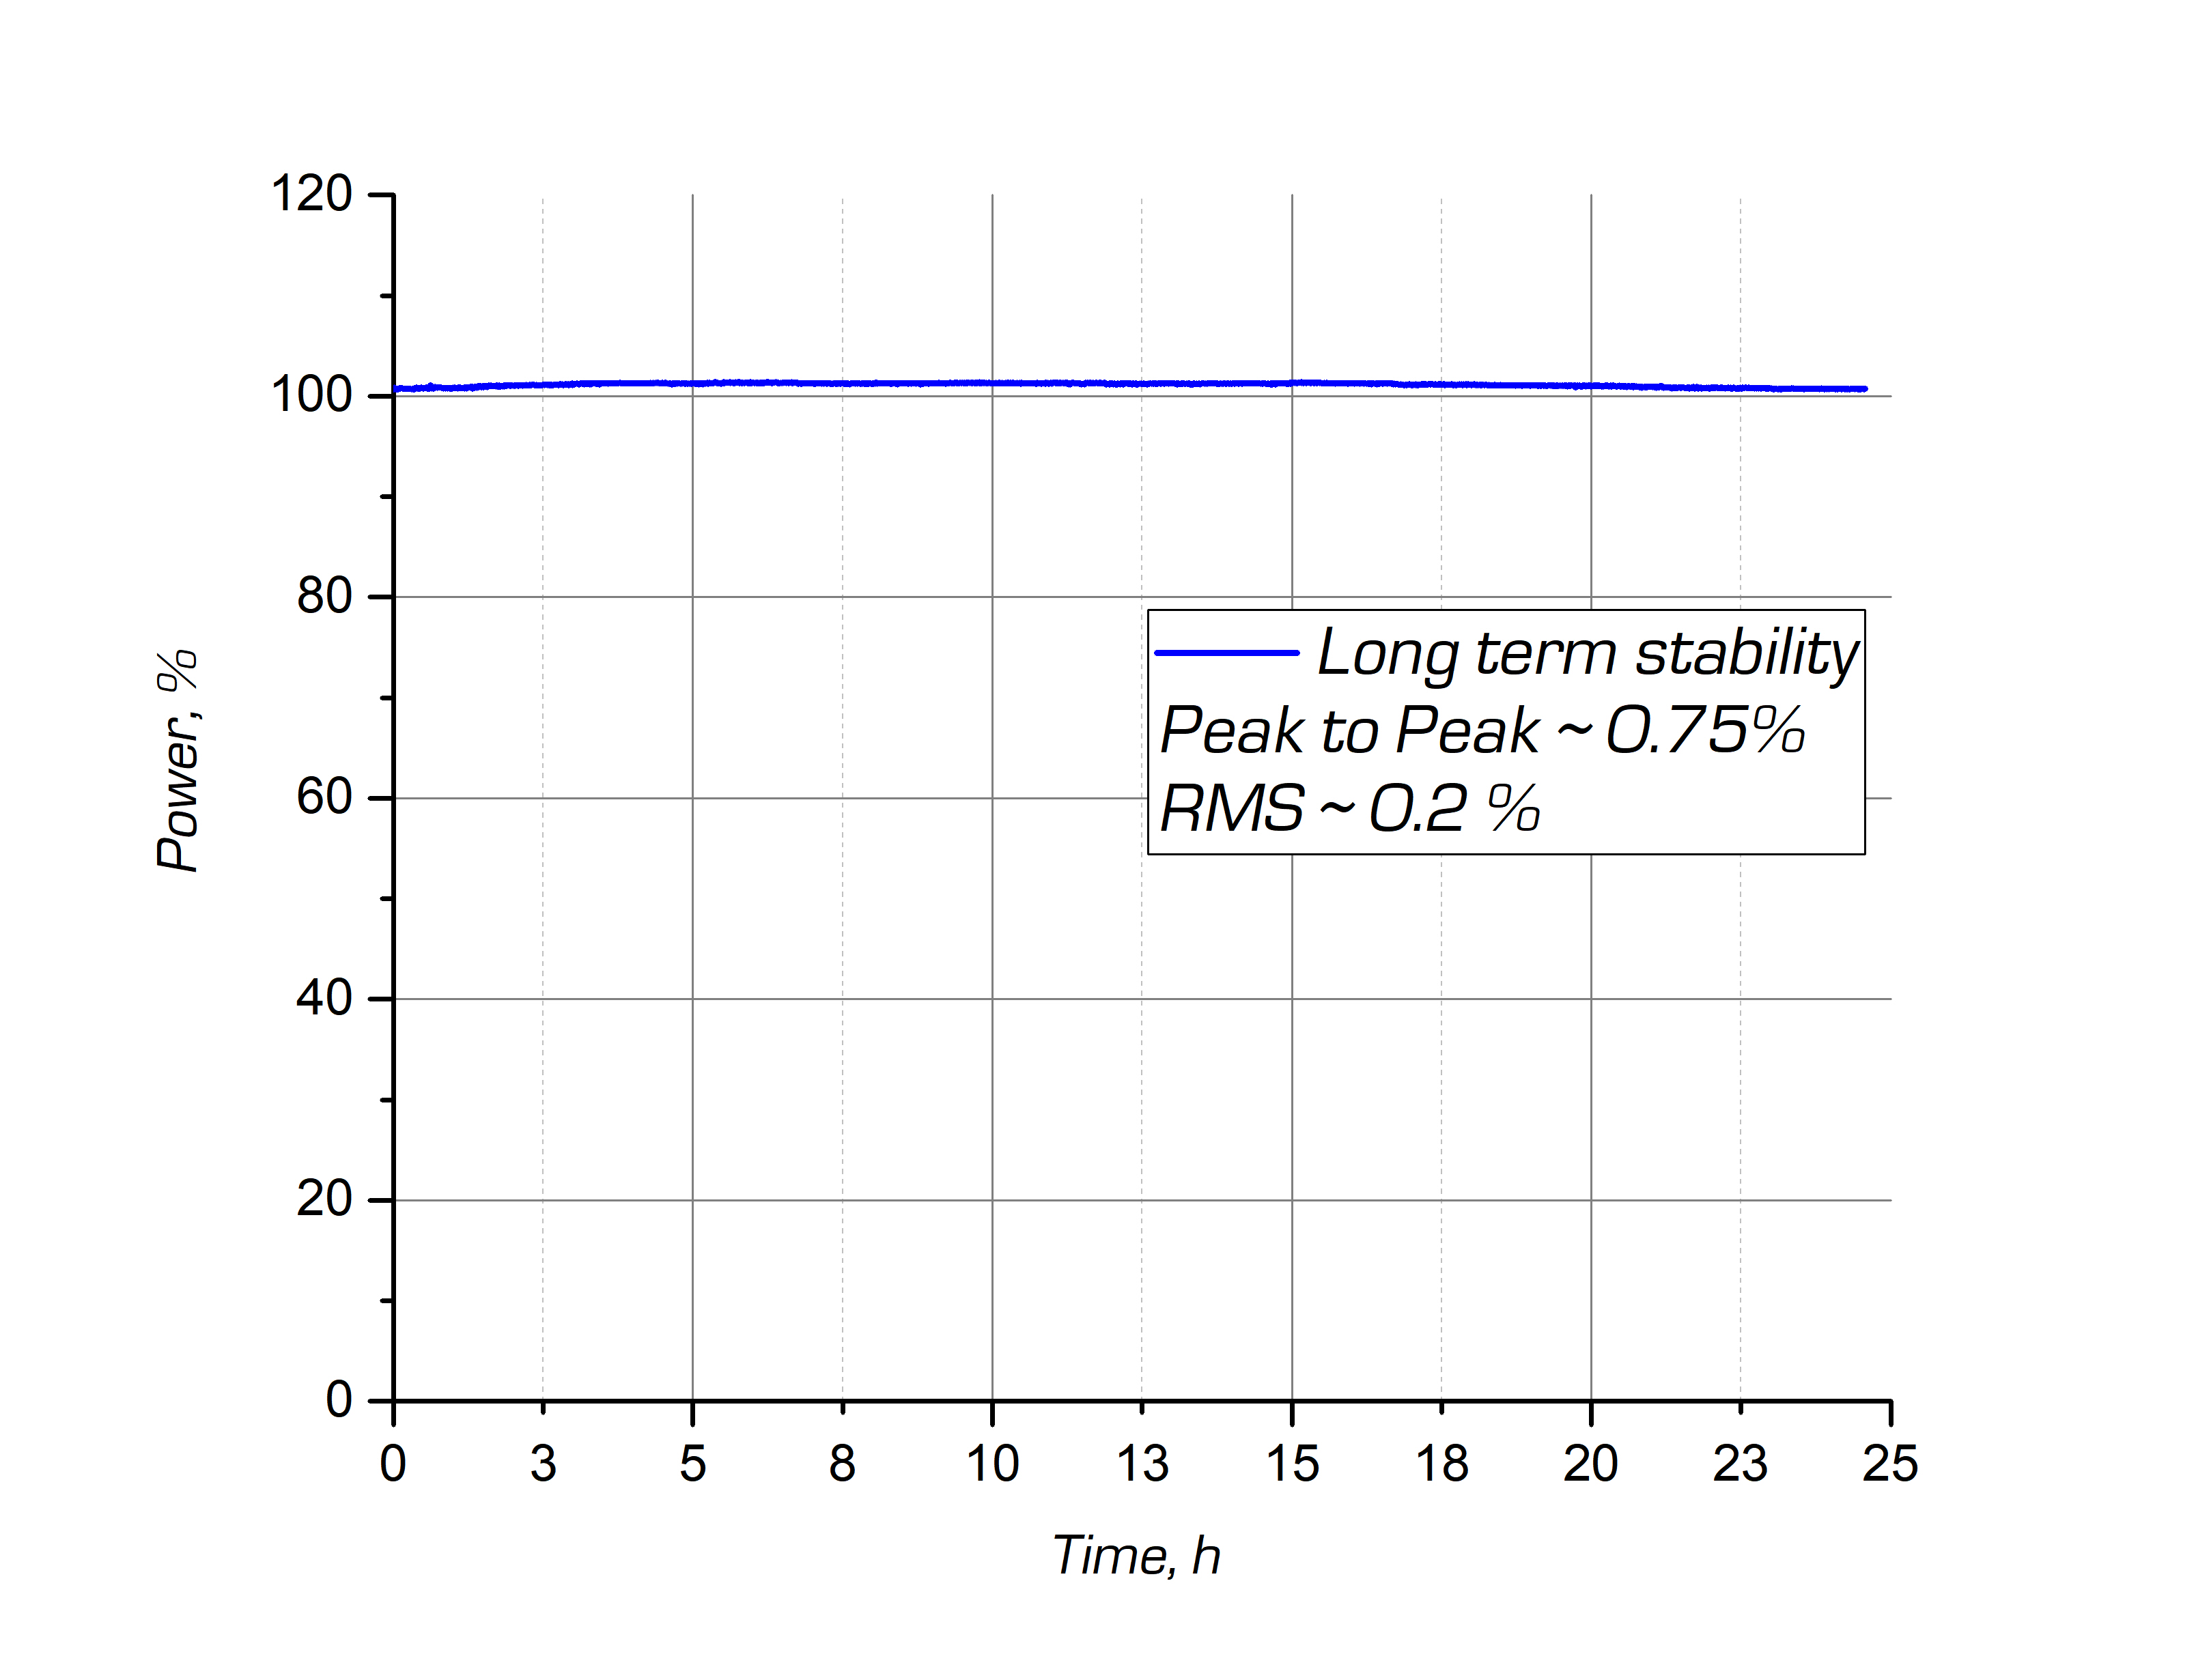 Typical long-term power stability of the ANTAUS platform